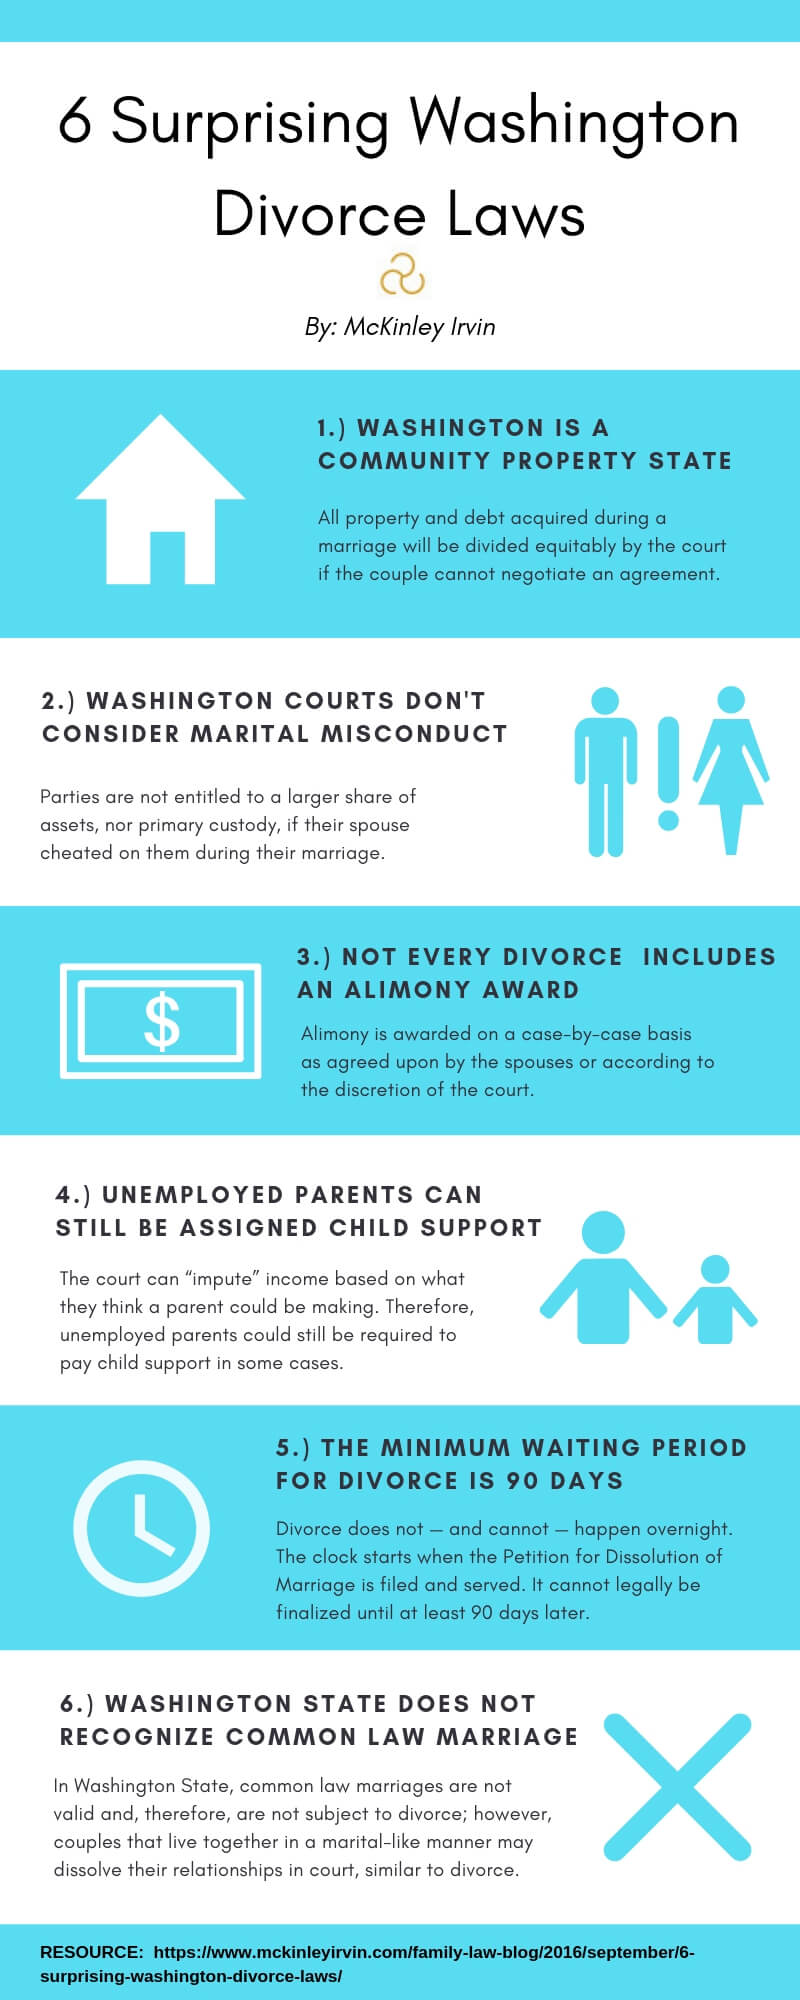 6 Surprising Washington Divorce Laws